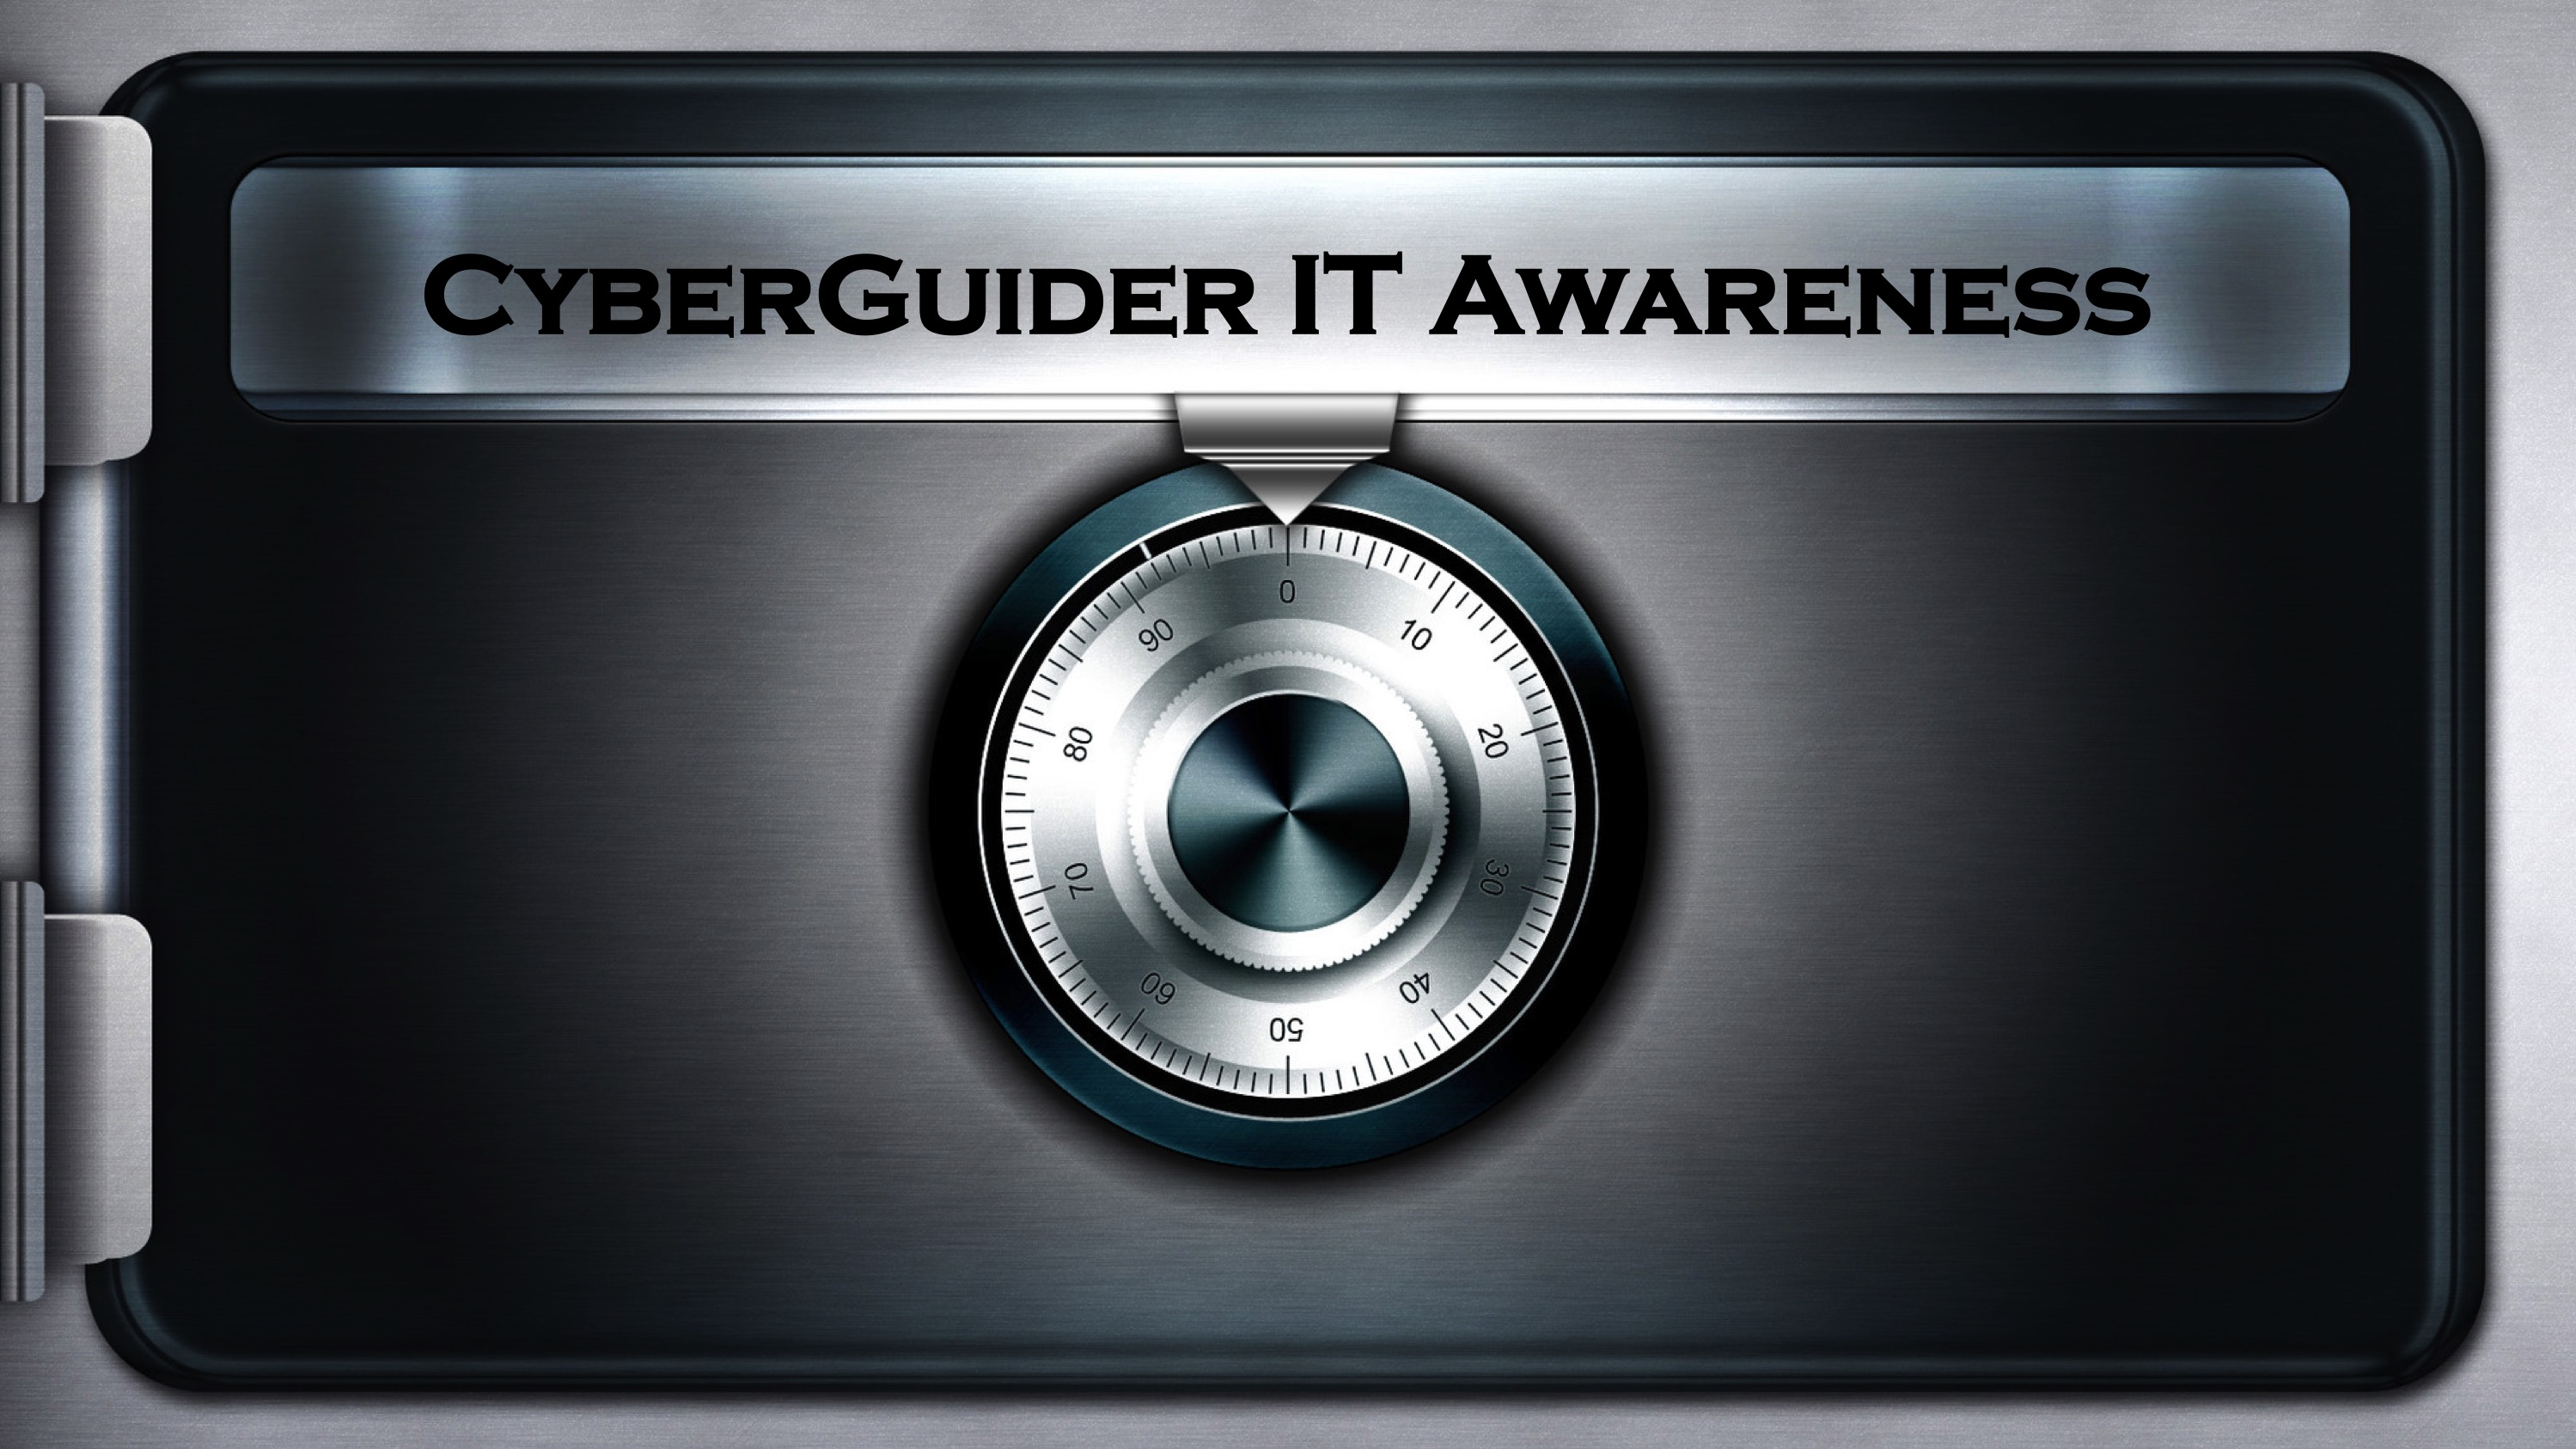 Cyberguider